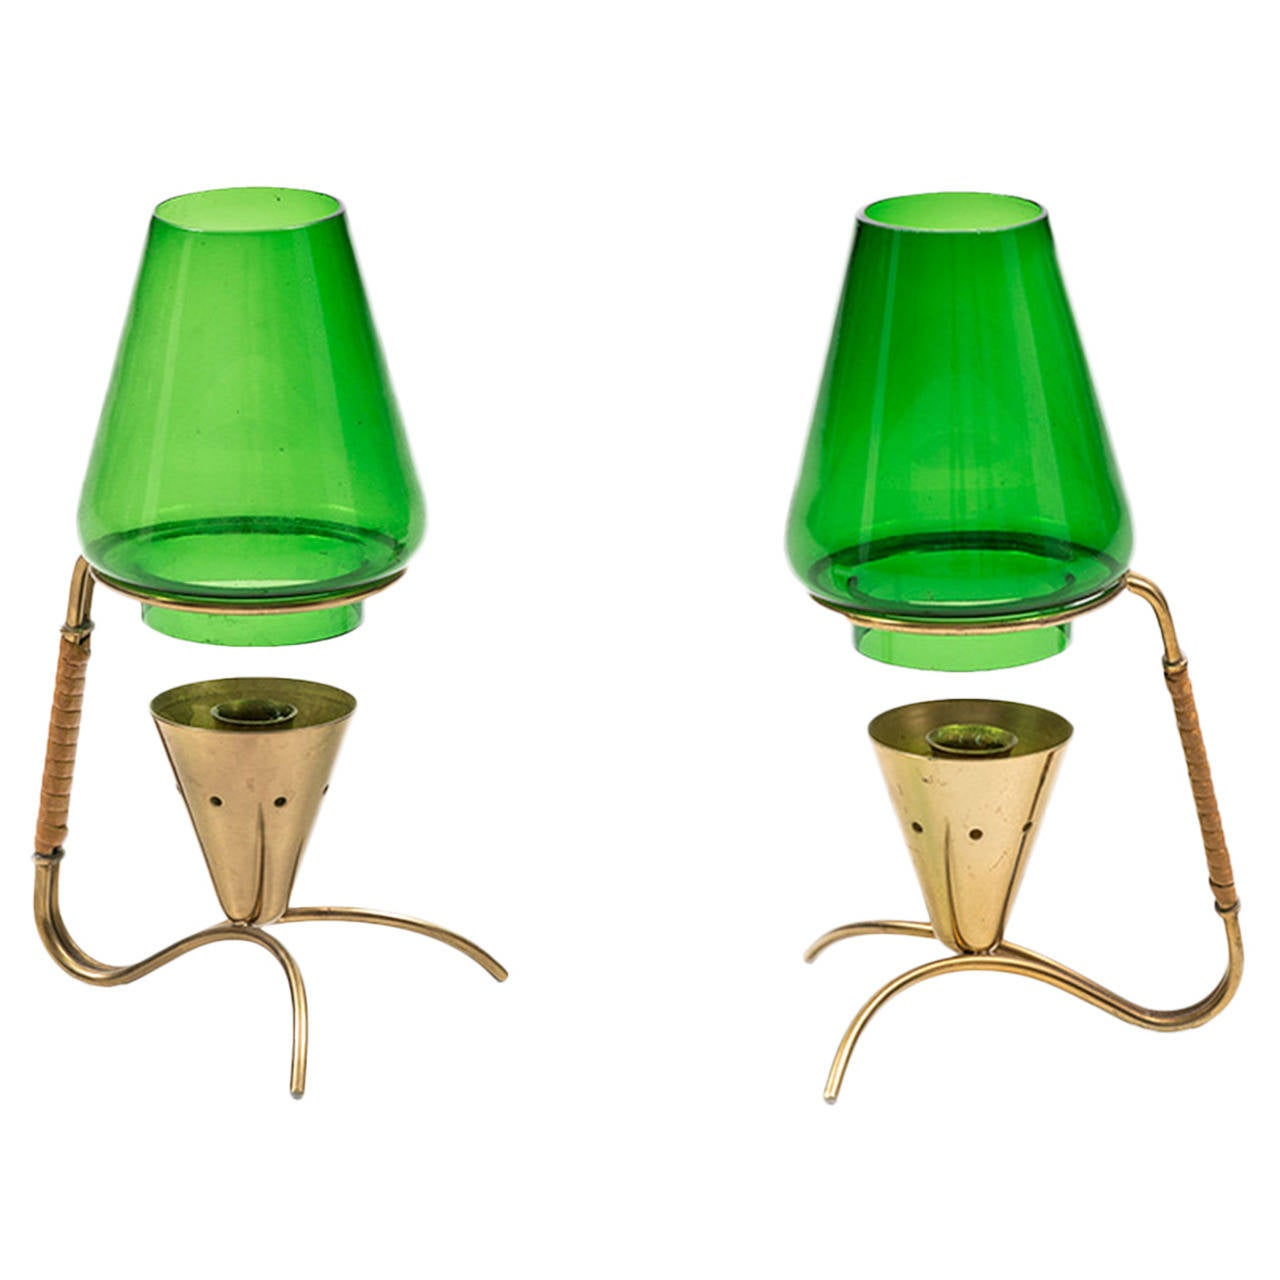 Gunnar Ander candlesticks in brass and green glass by Ystad metall in Sweden